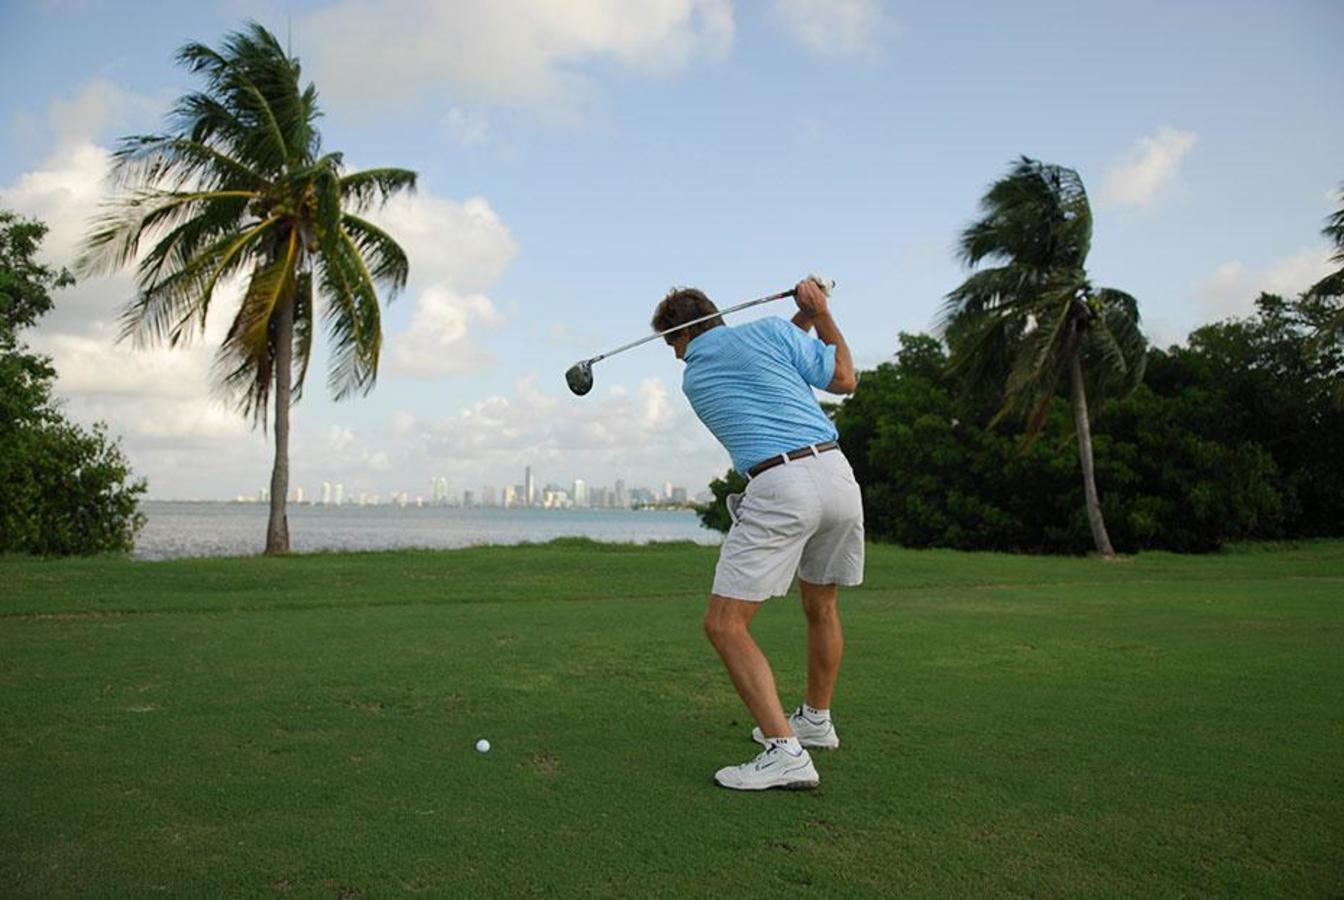 Teeing off at Crandon Golf with Downtown Miami across the bay